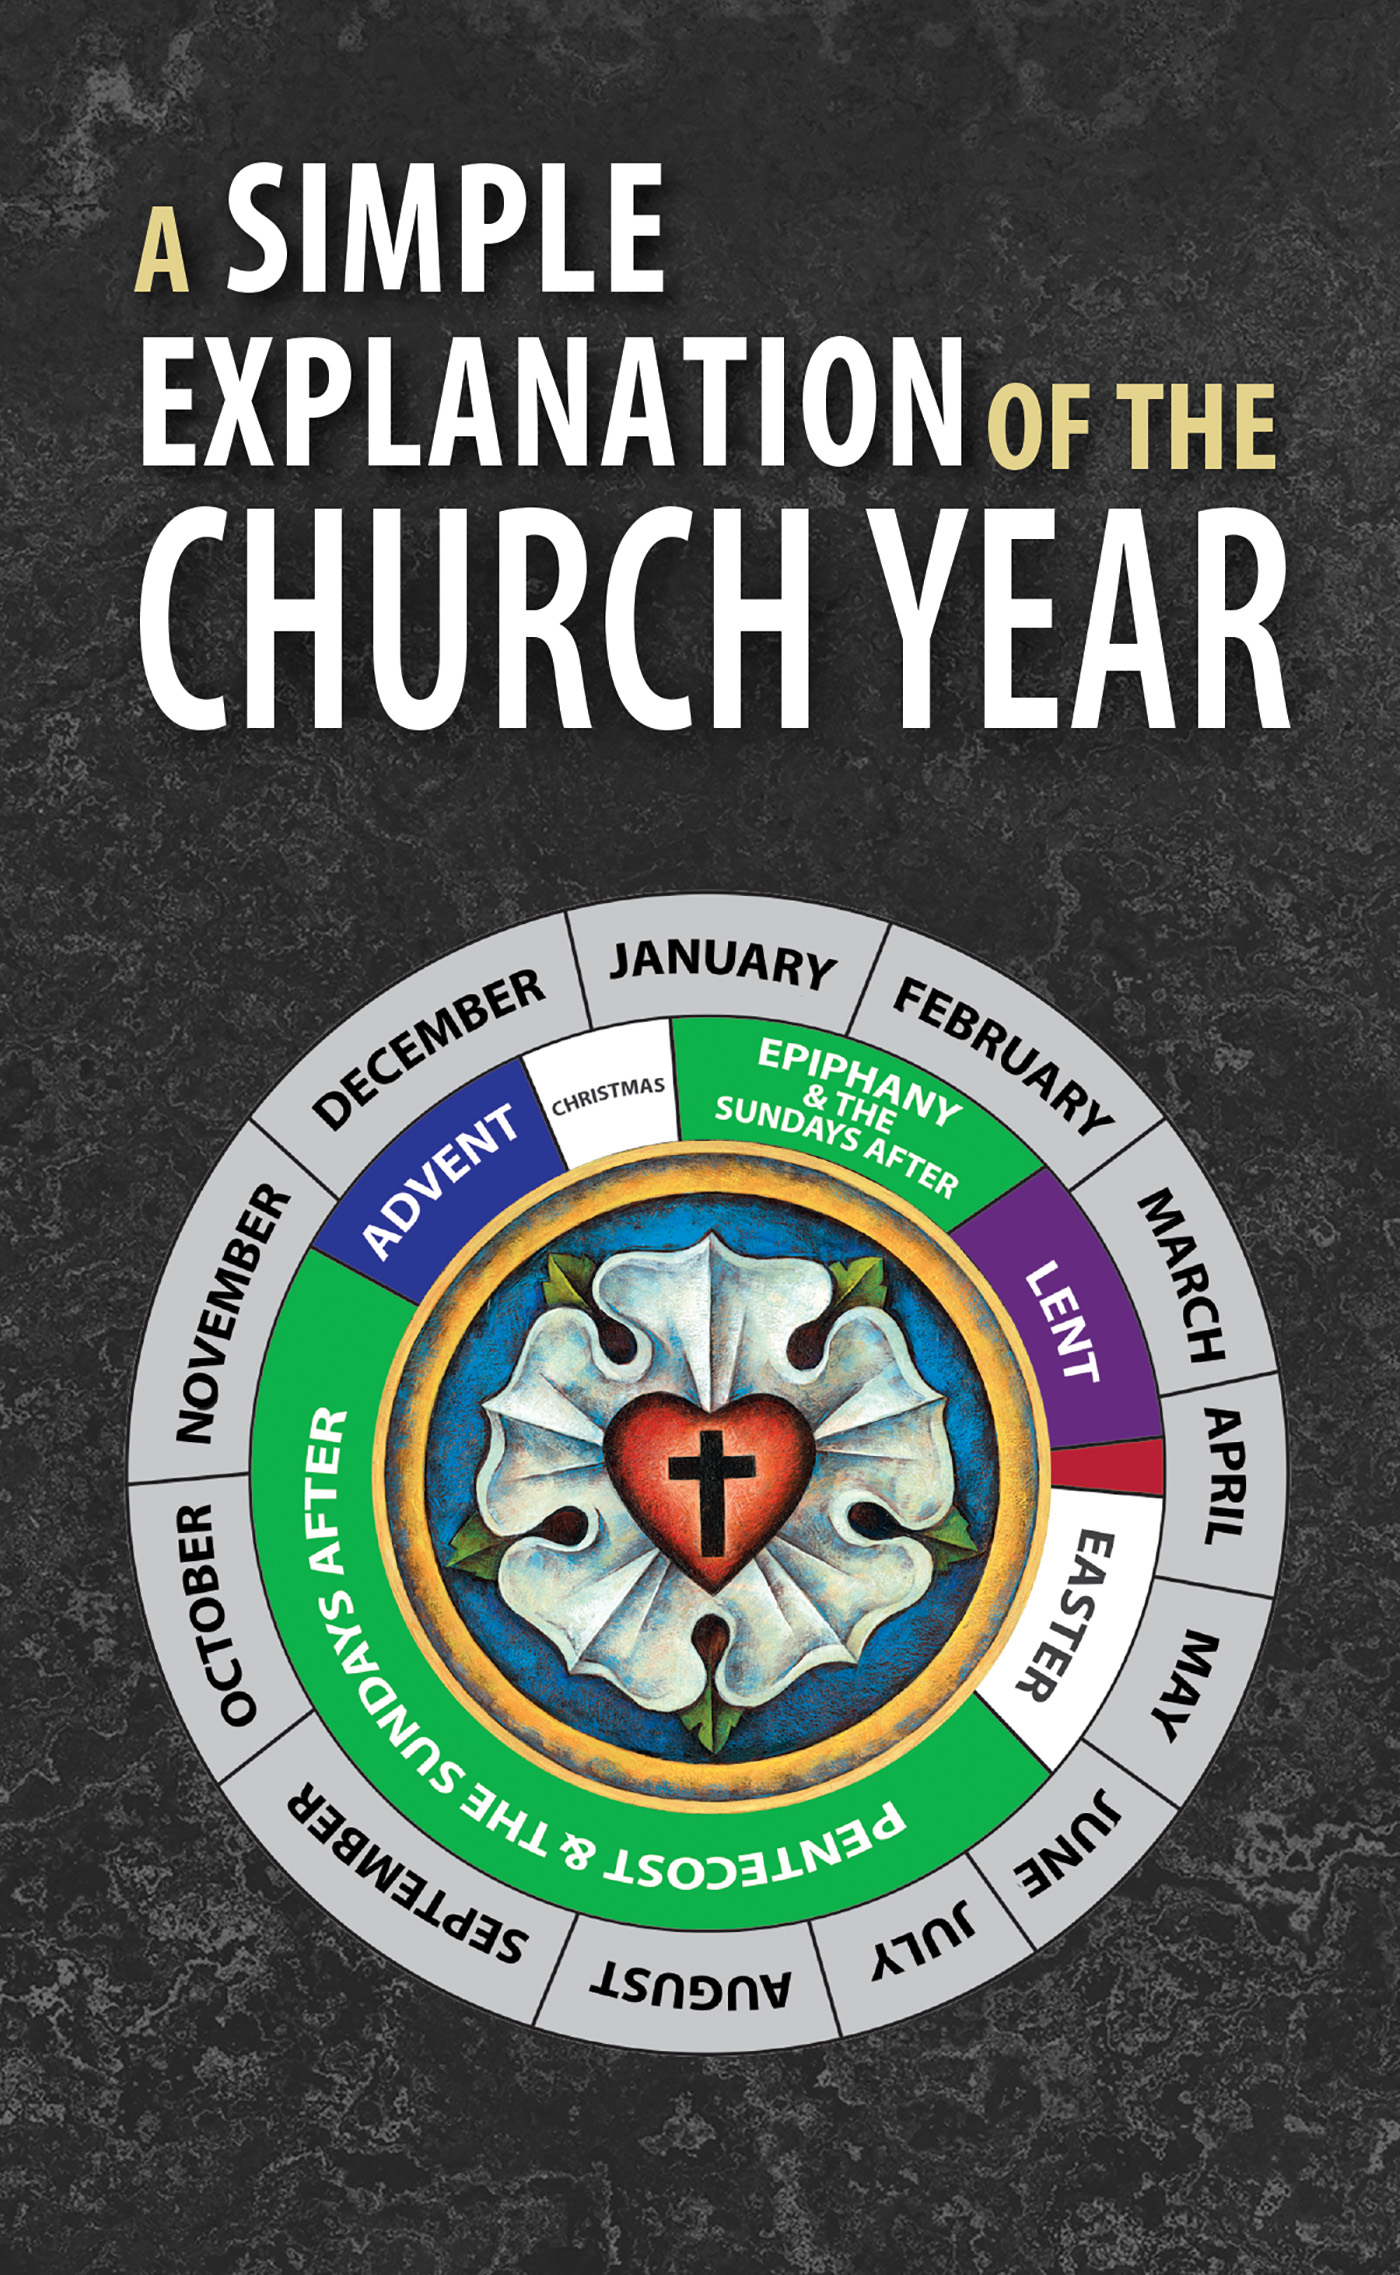 A Simple Explanation of the Church Year